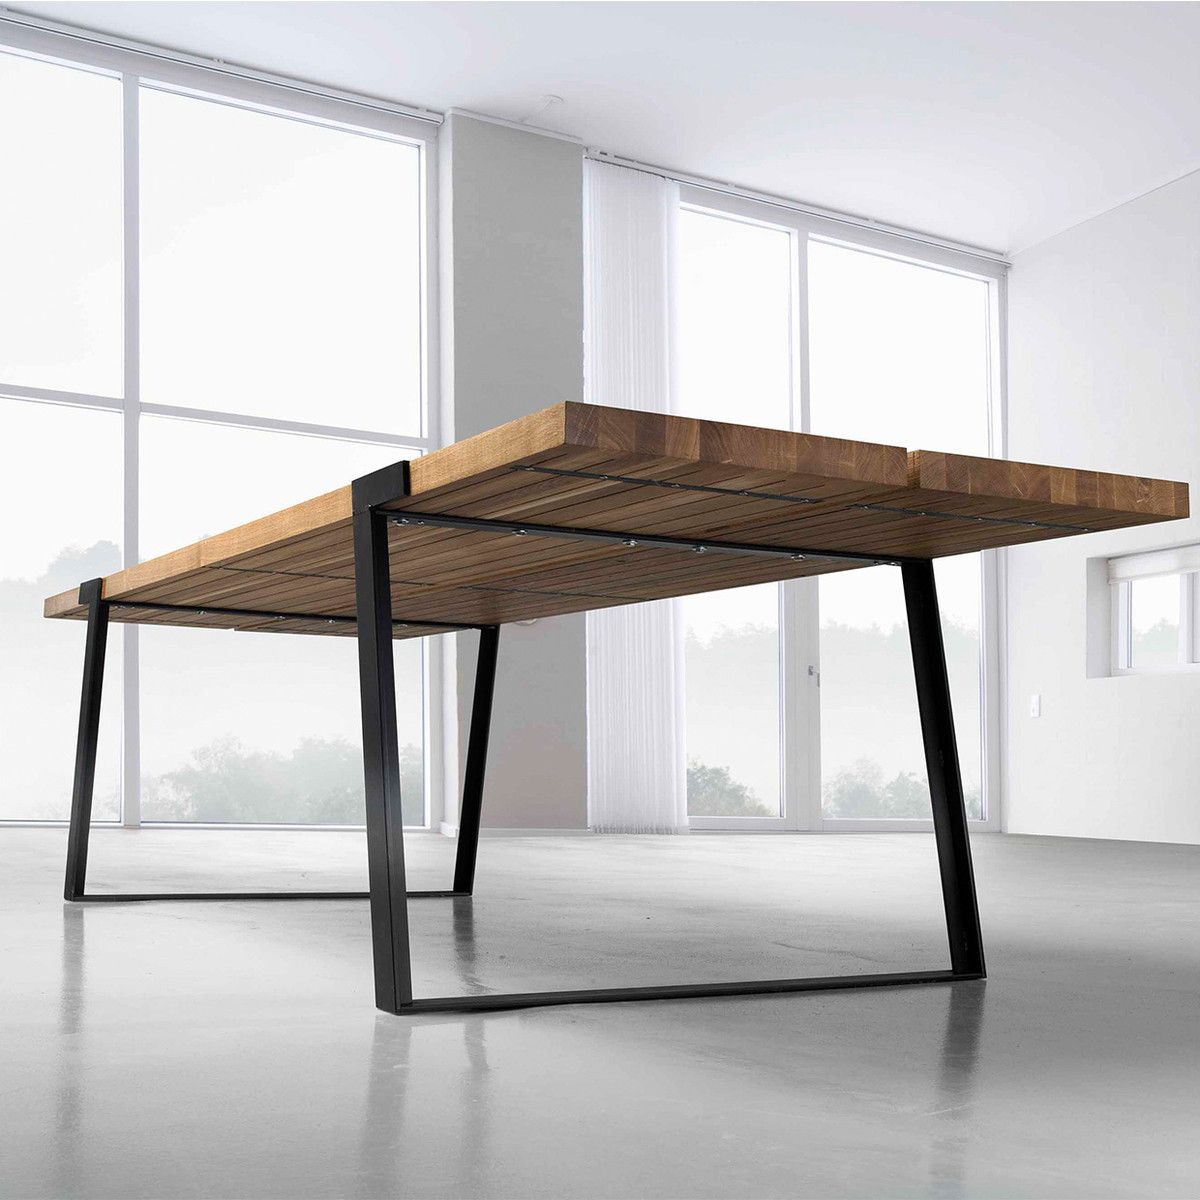 Design Your Own Made To Measure Solid Wood Furniture With Fab Dining Table Furniture Furniture Design